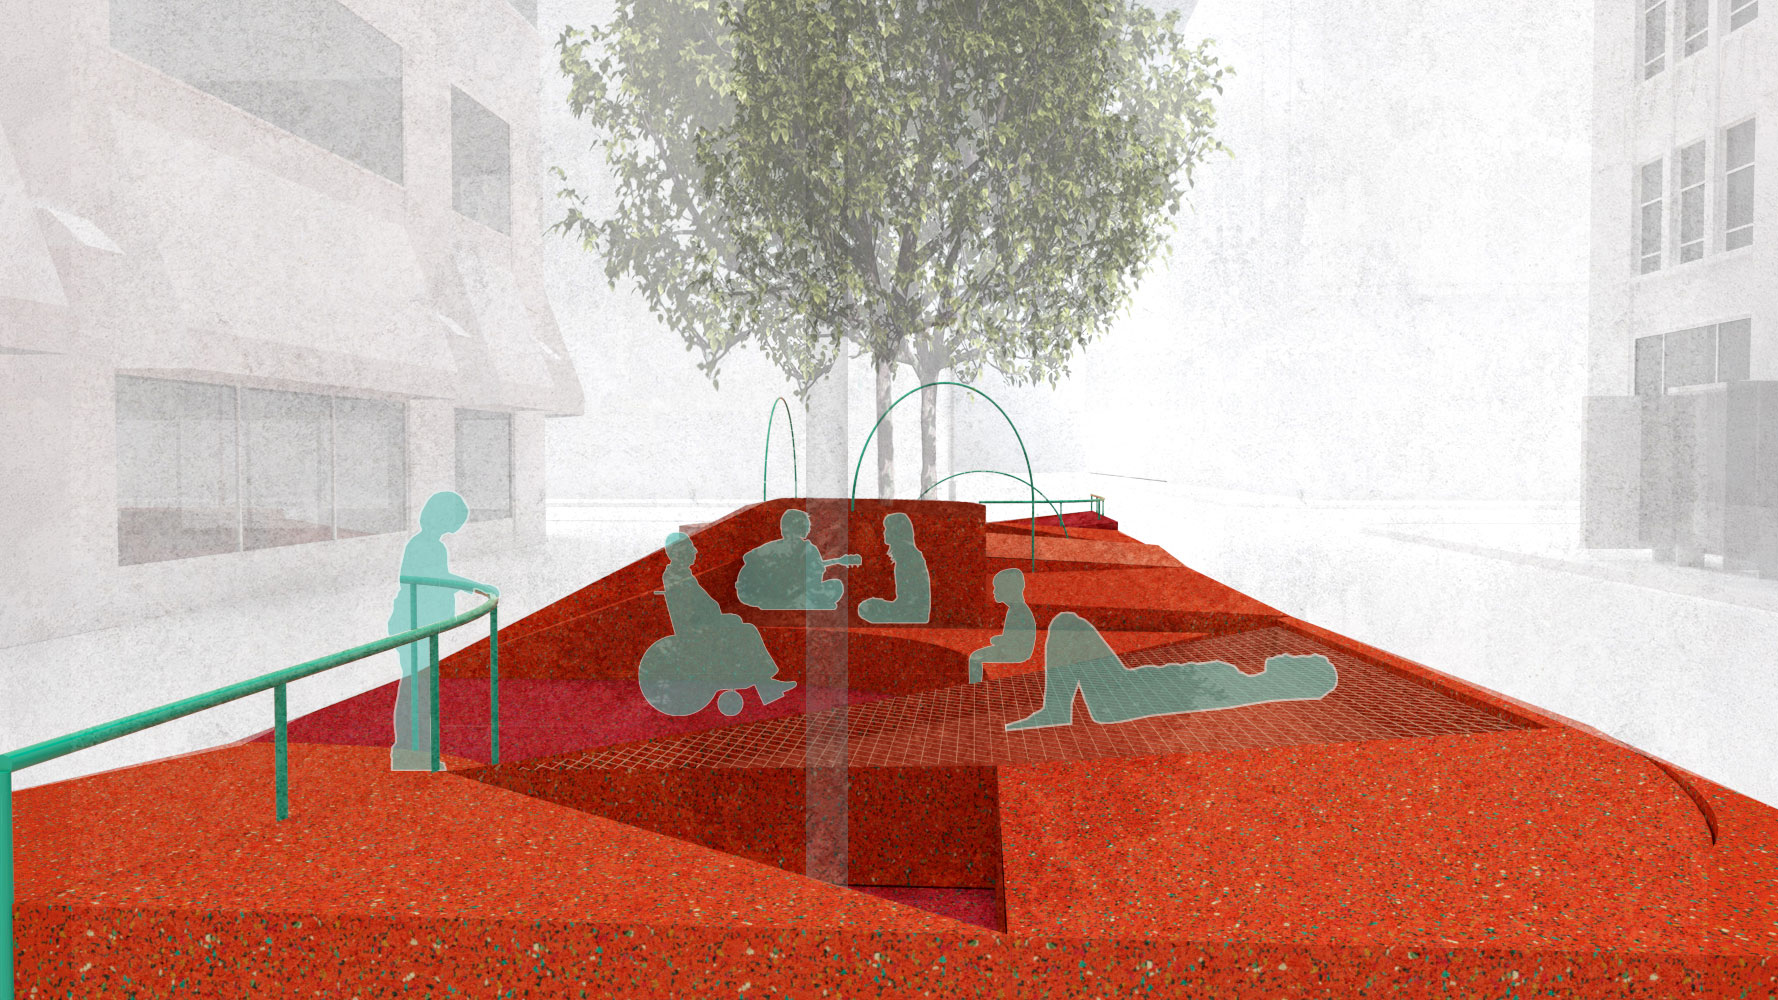 rendering of people on an orange plaza, restorative ground